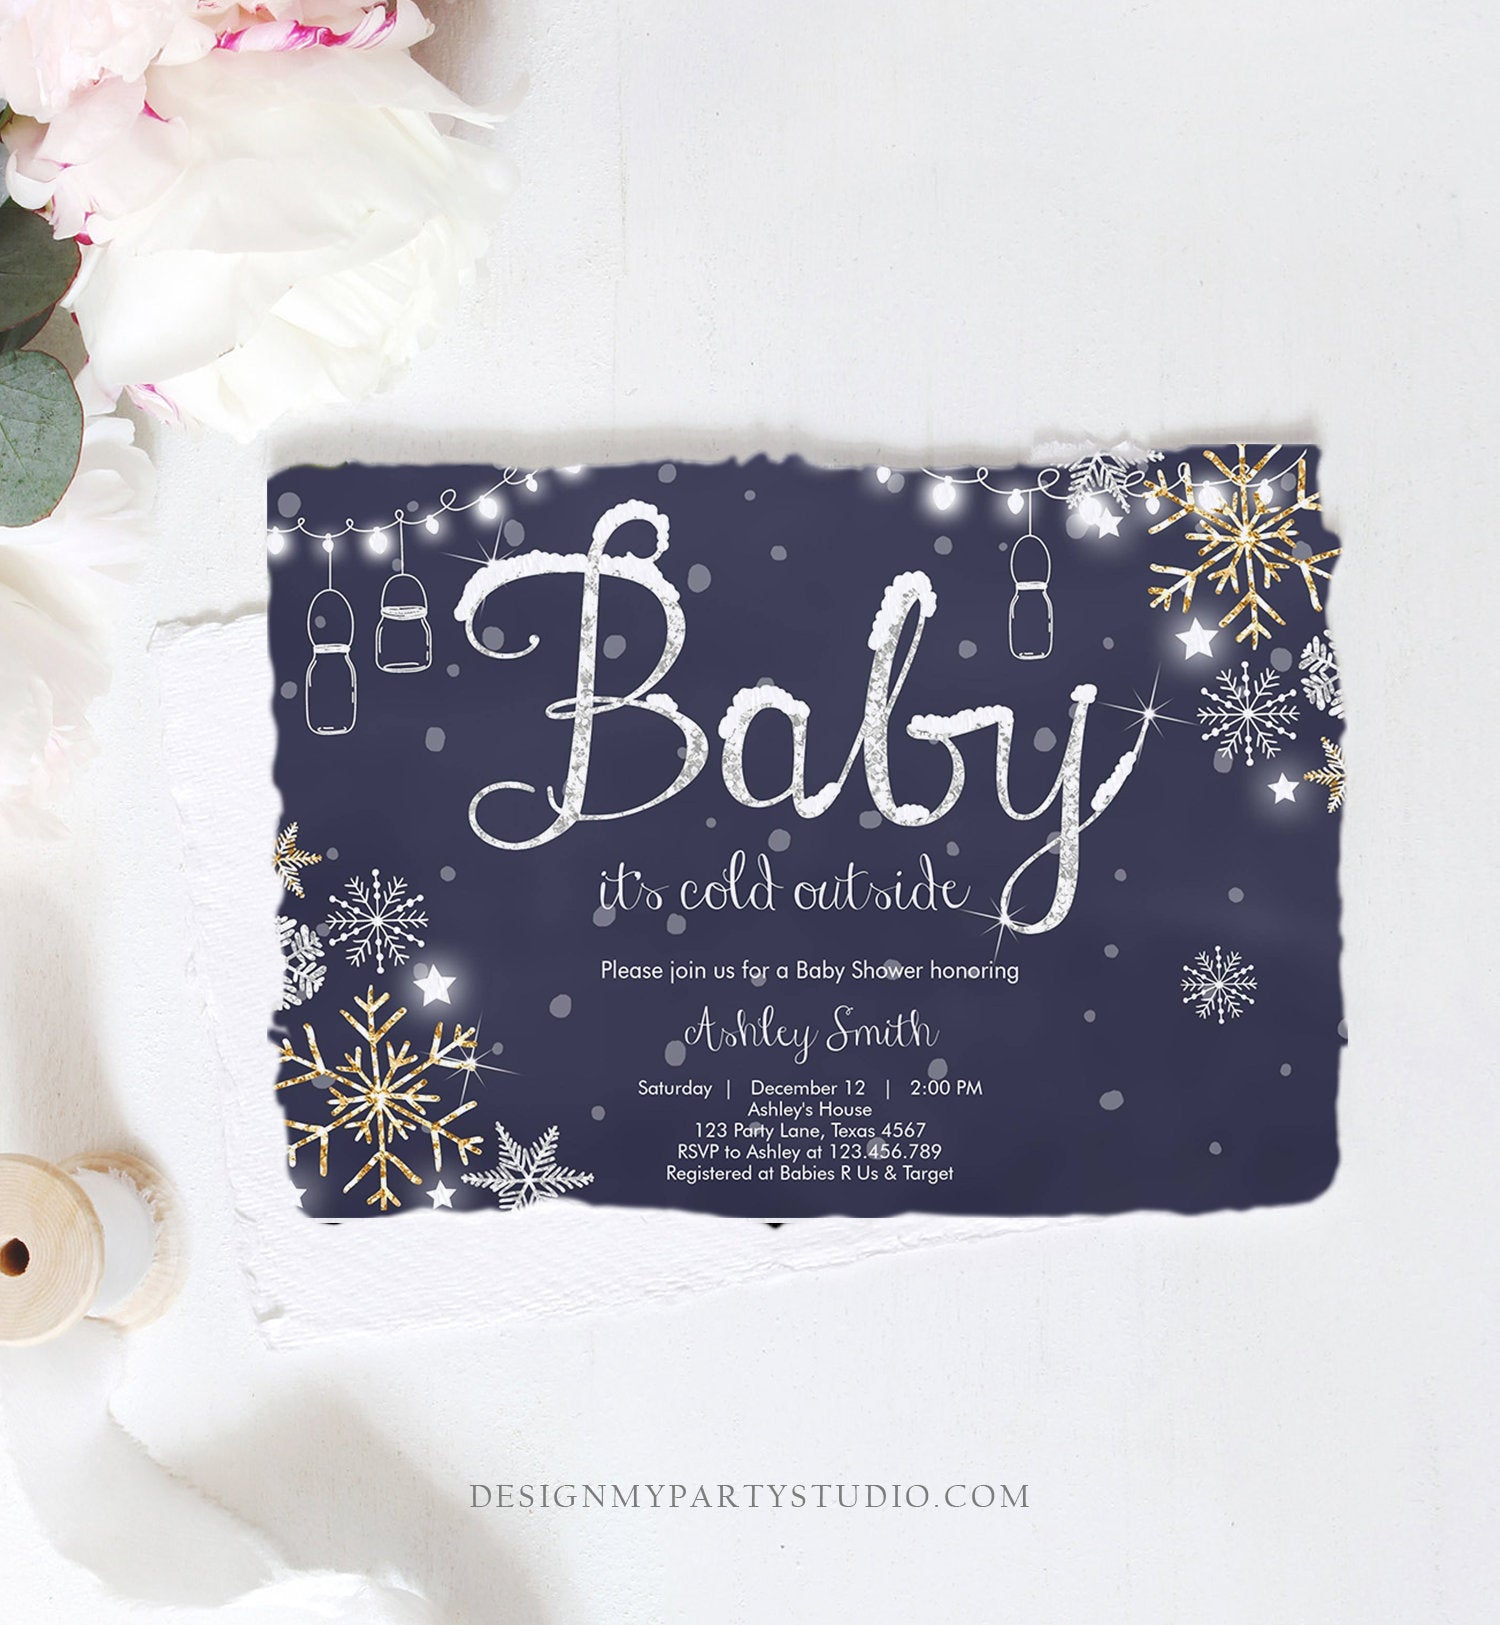 Editable Winter Baby Shower Invitation Baby Its Cold Outside Gender Neutral Silver Gold Glitter Snow Template Instant Download Corjl 0032